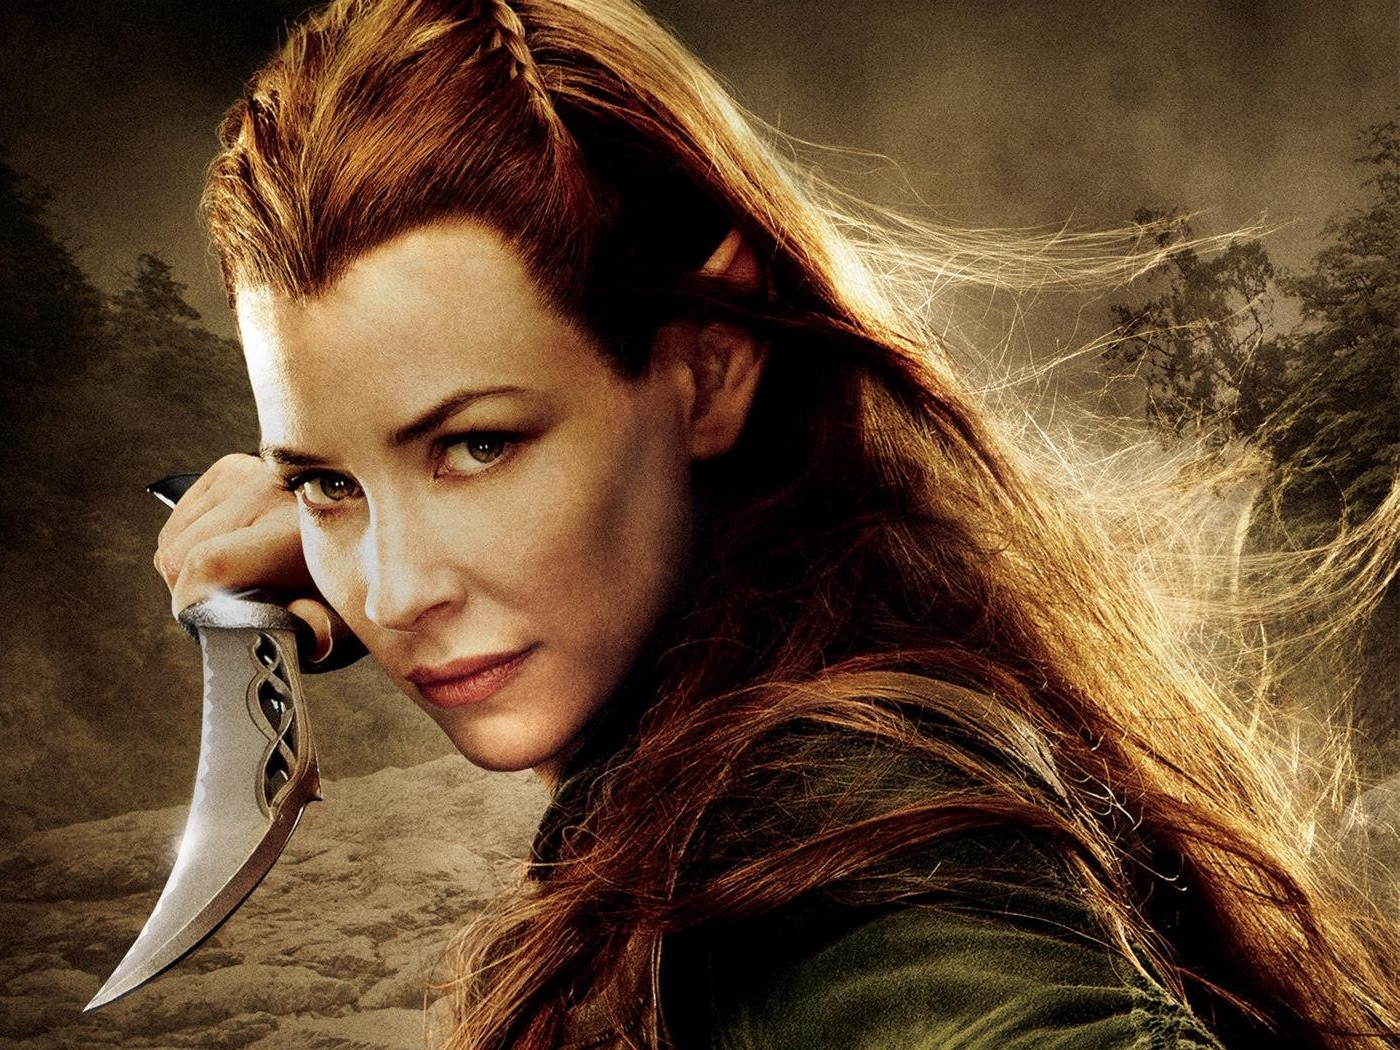 Evangeline Lilly The Hobbit The Desolation Of Smaug Wallpapers 1400x1050